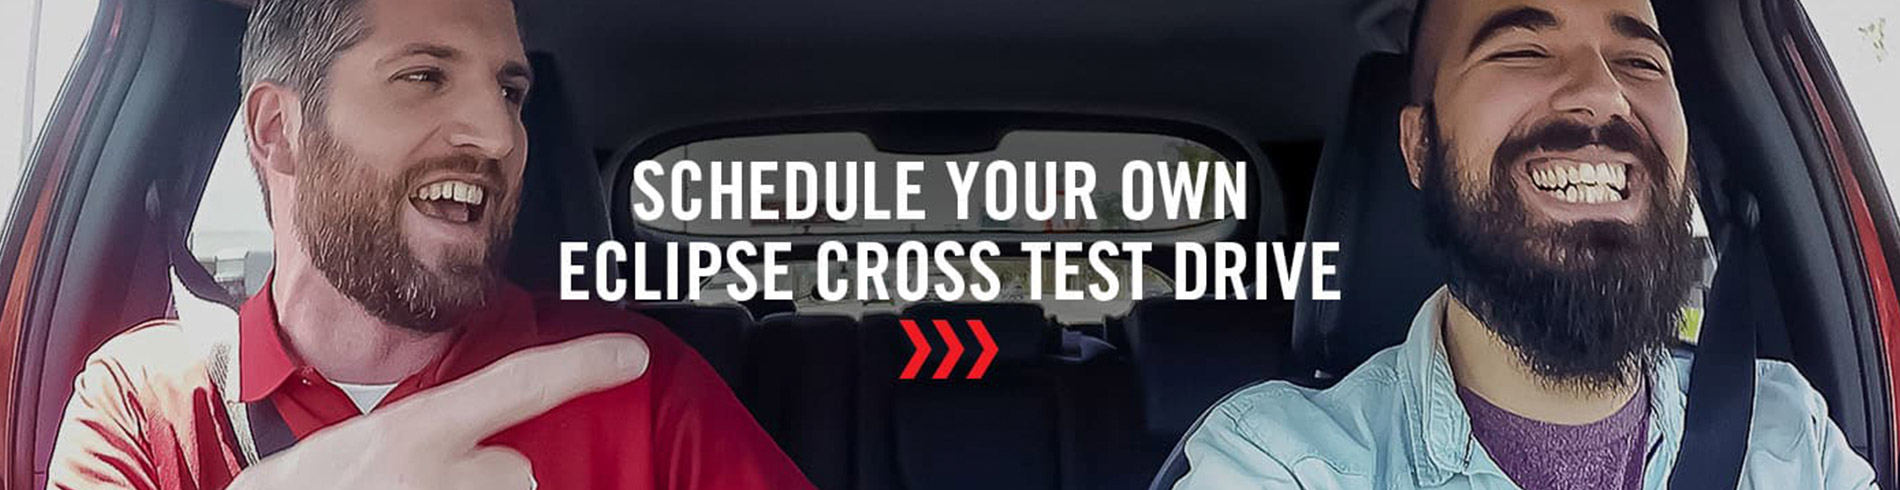 Schedule Your Own Eclipse Cross Test Drive